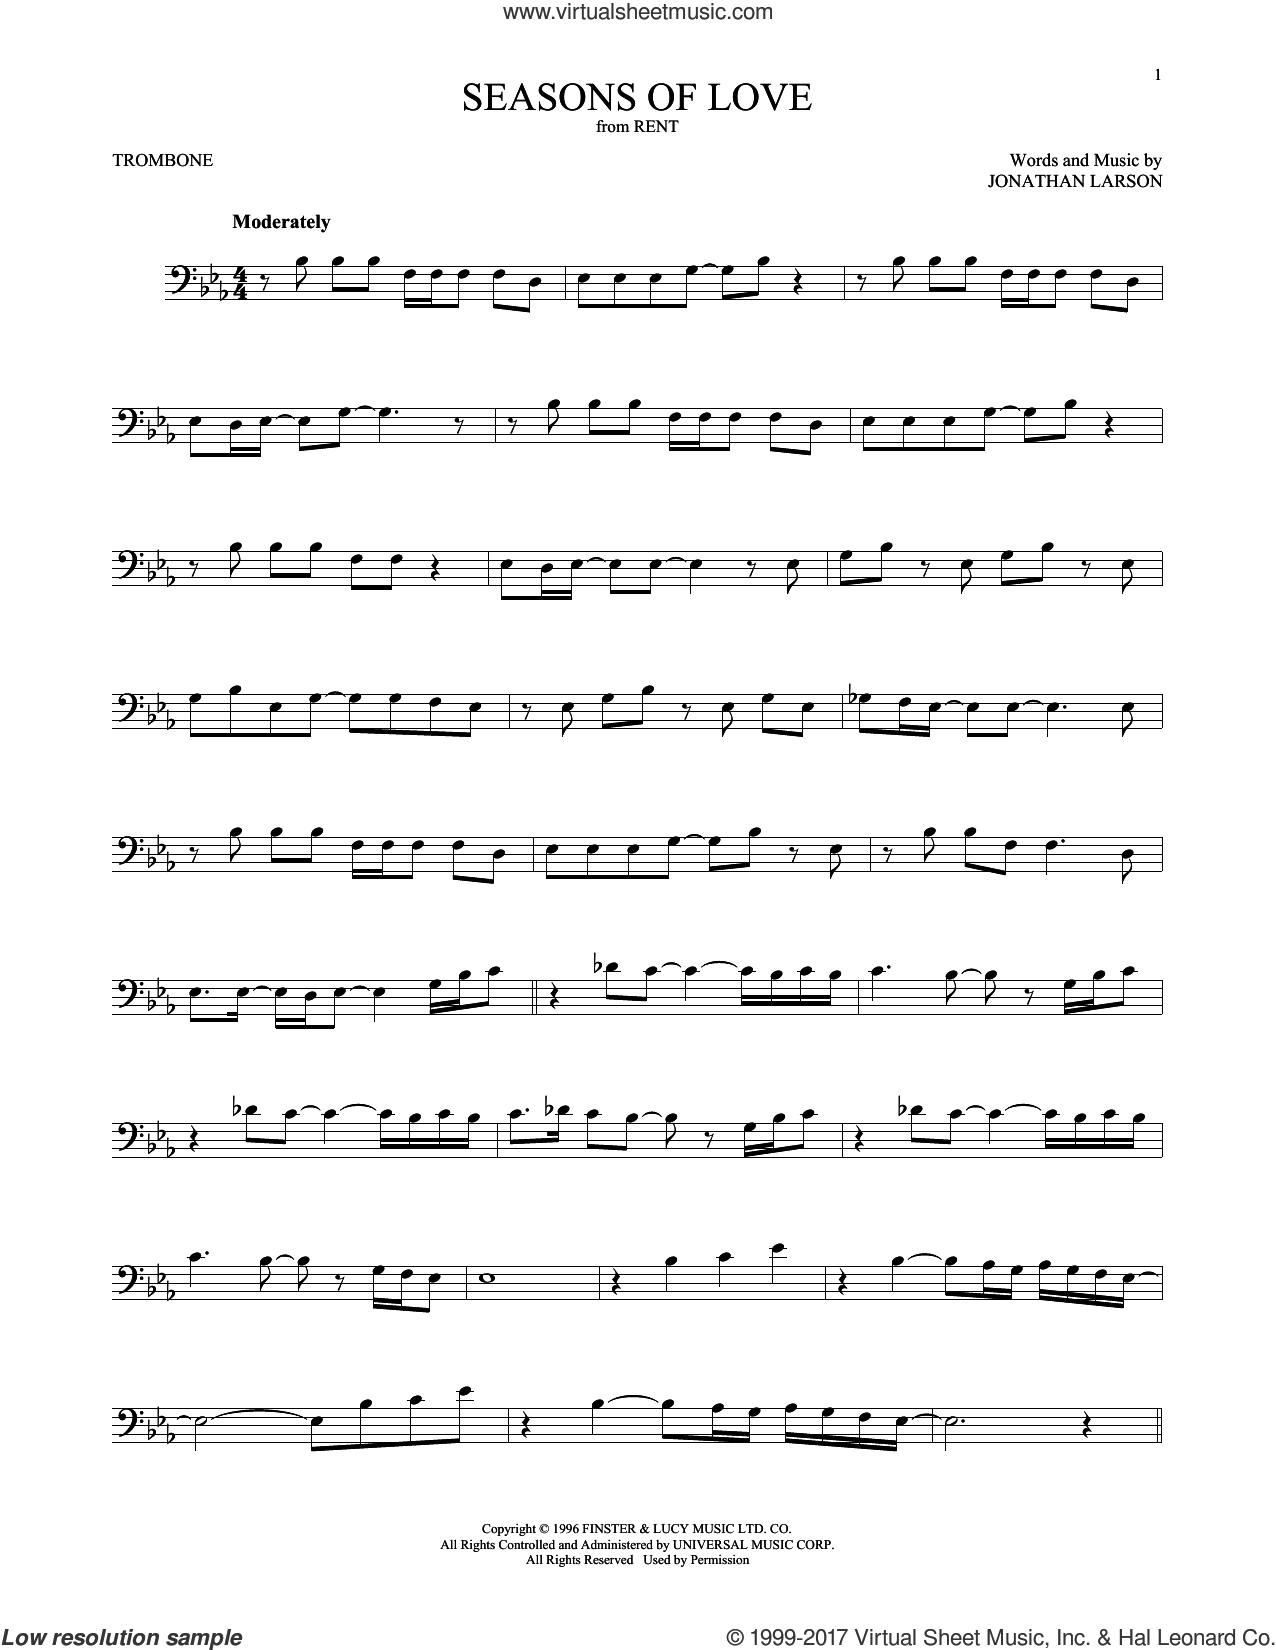 Seasons Of Love sheet music for trombone solo by Jonathan Larson, intermediate skill level